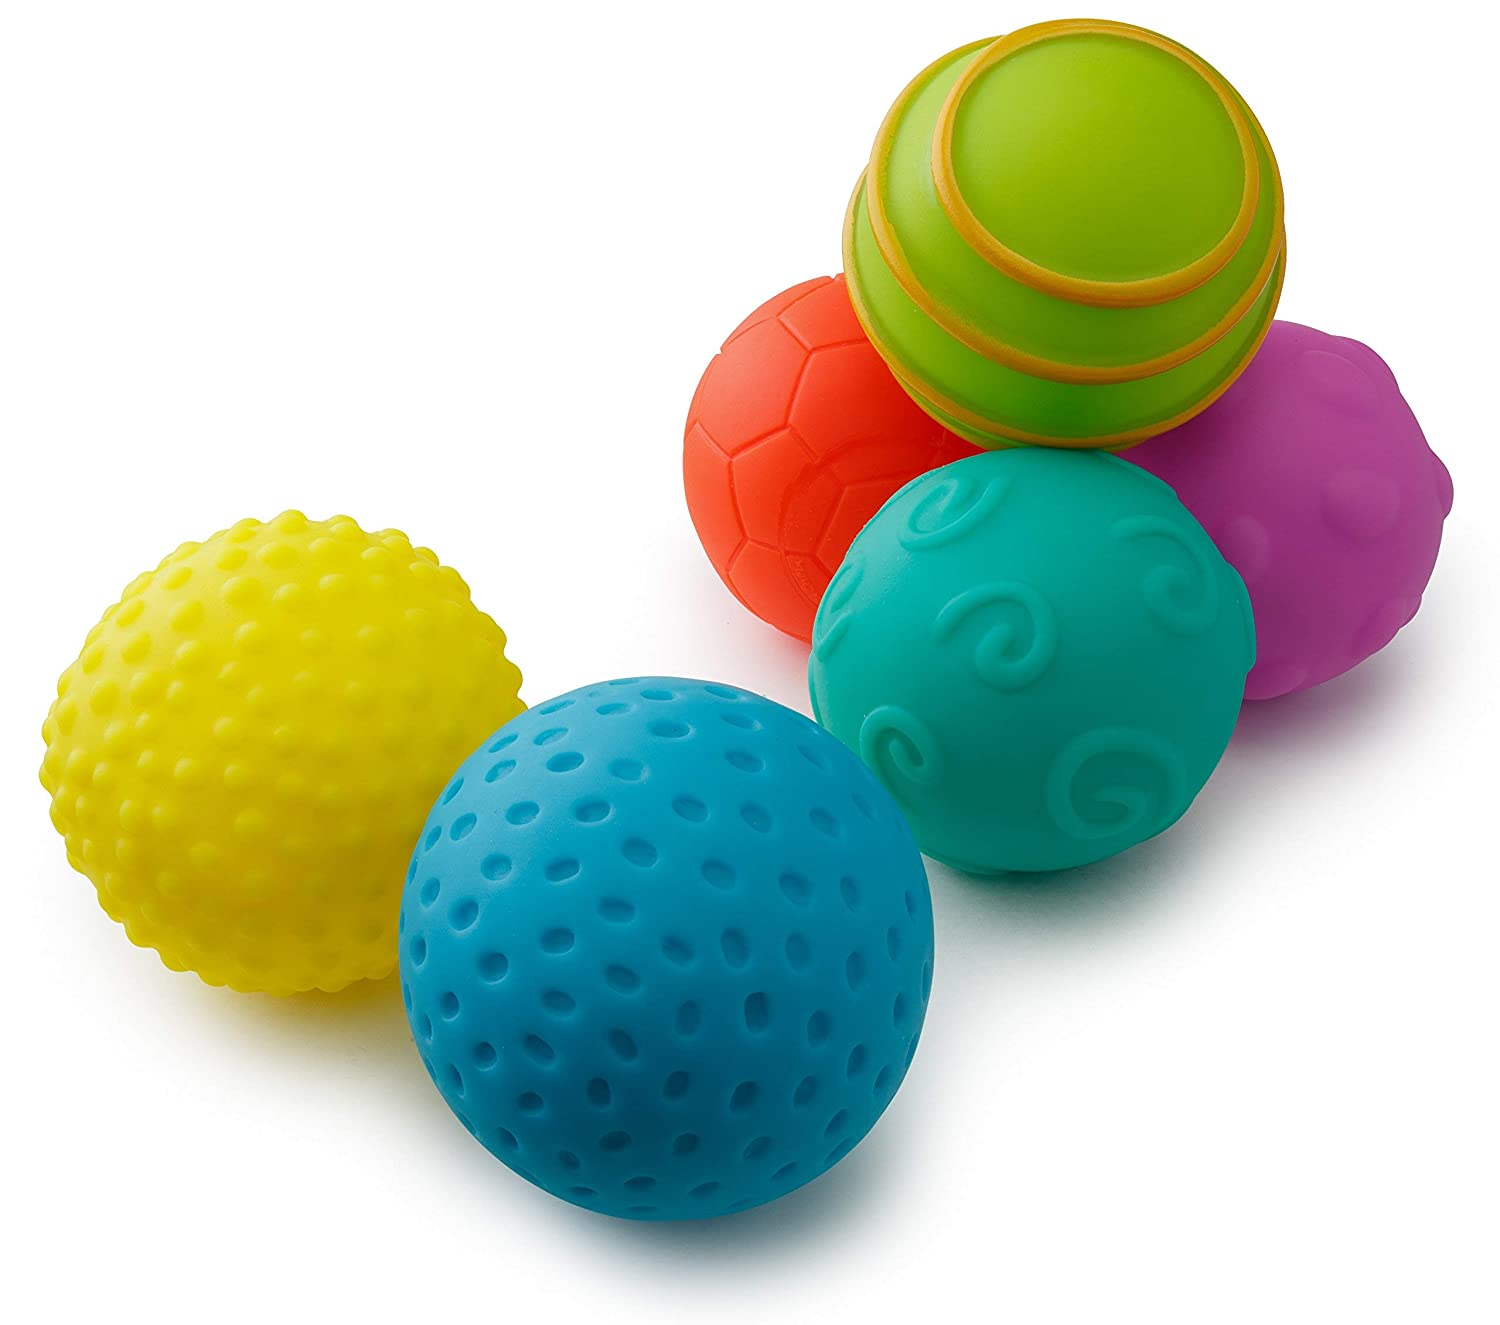 Playkidz: Super Durable 6 Pack Sensory Balls, Soft & Textured Balls for Babies & Toddlers